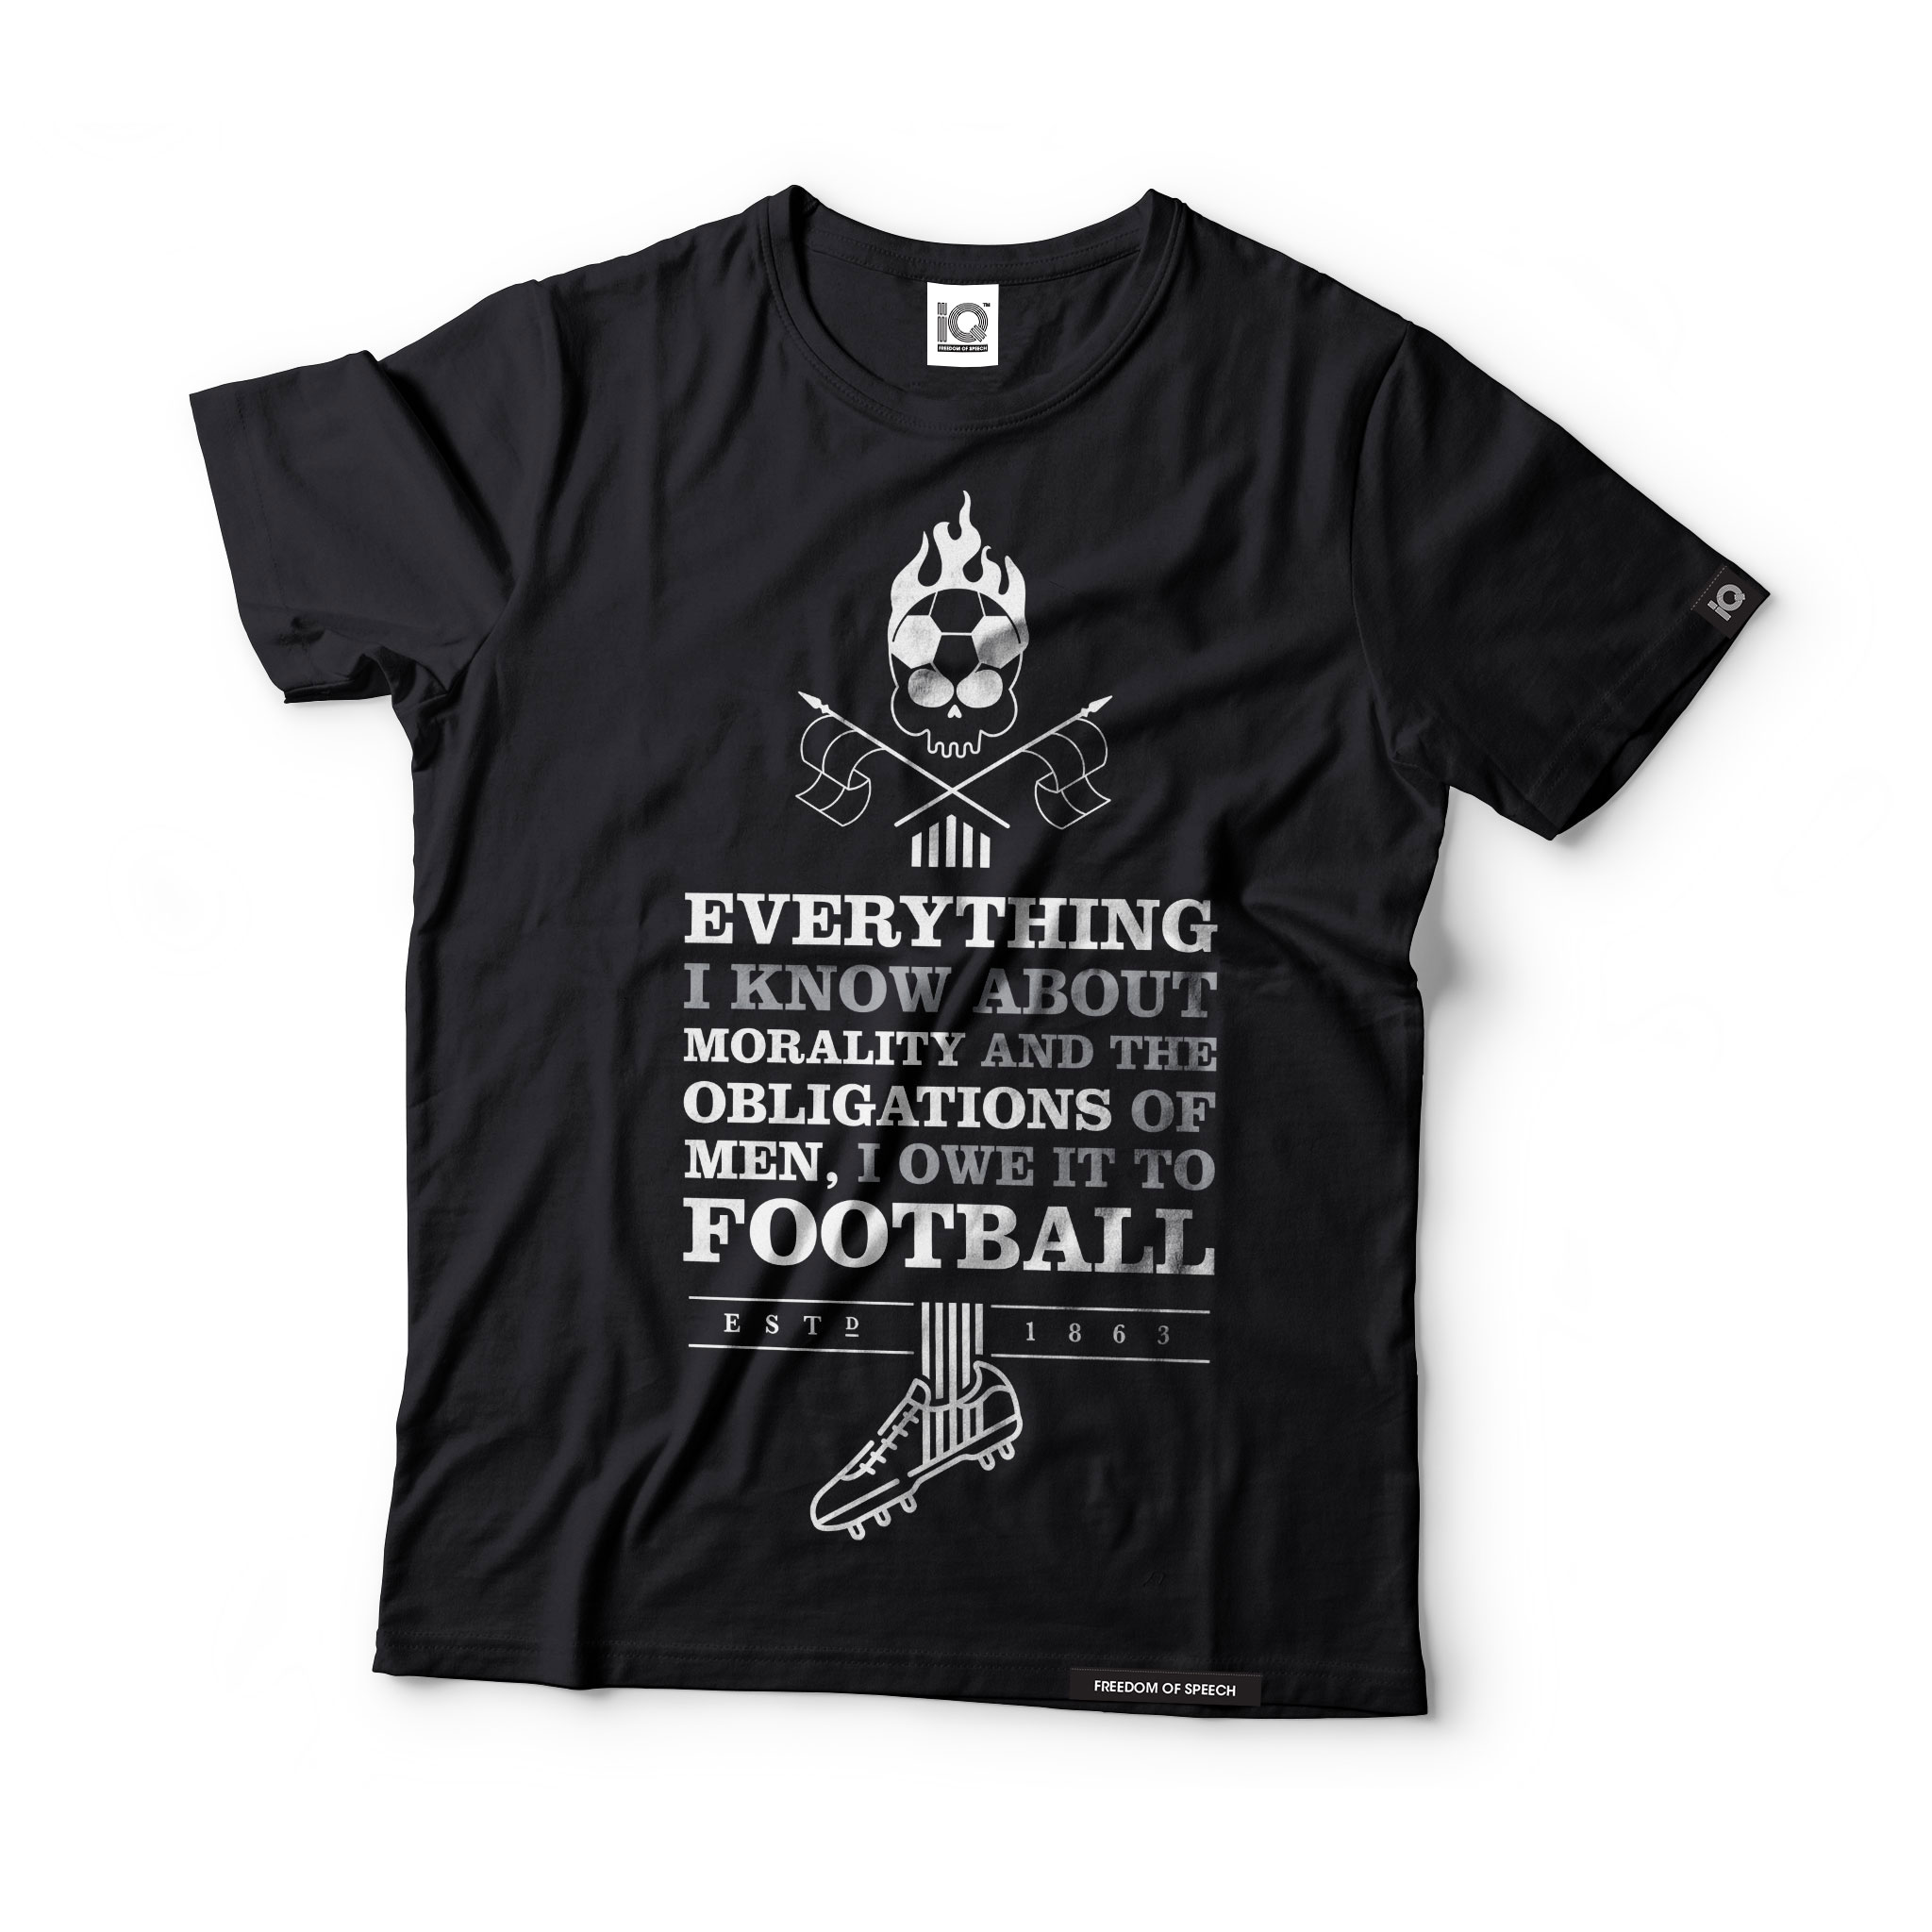 everything-I-know-about-morality-and-the-obligations-of-men-I-owe-it-to-football-black-tshirt